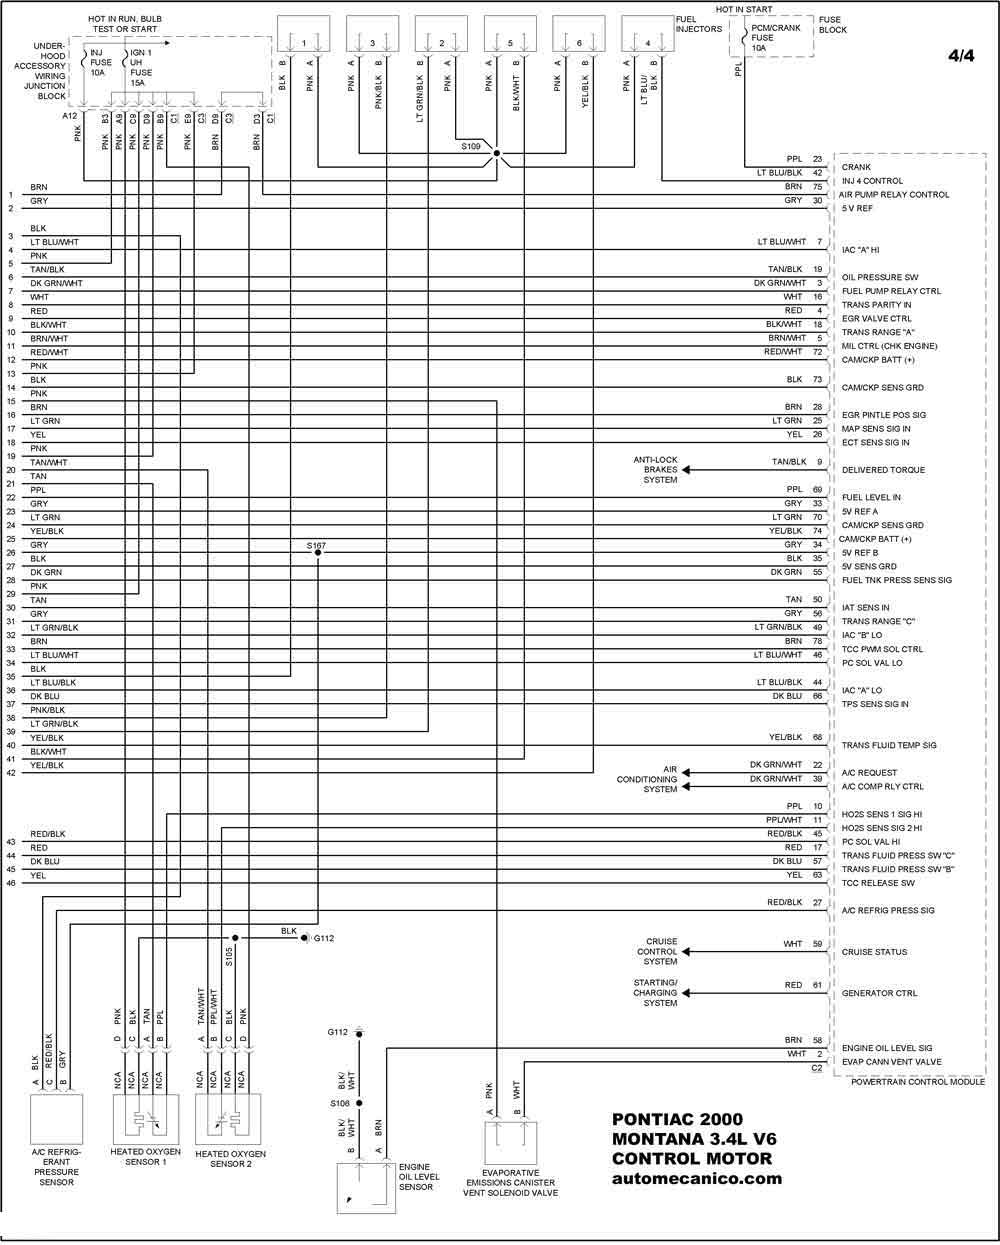 2005 pontiac montana wiring diagram pcm with 00 Pontiac Montana Engine on 2007 Pontiac G6 Radio Wiring Diagram in addition Cummins Wvo Conversion T28 150 together with 3400 Crank Sensor Location together with Wiring Diagram Additionally 1995 Camaro Fuel Pump Relay Location On also 00 Pontiac Montana Engine.